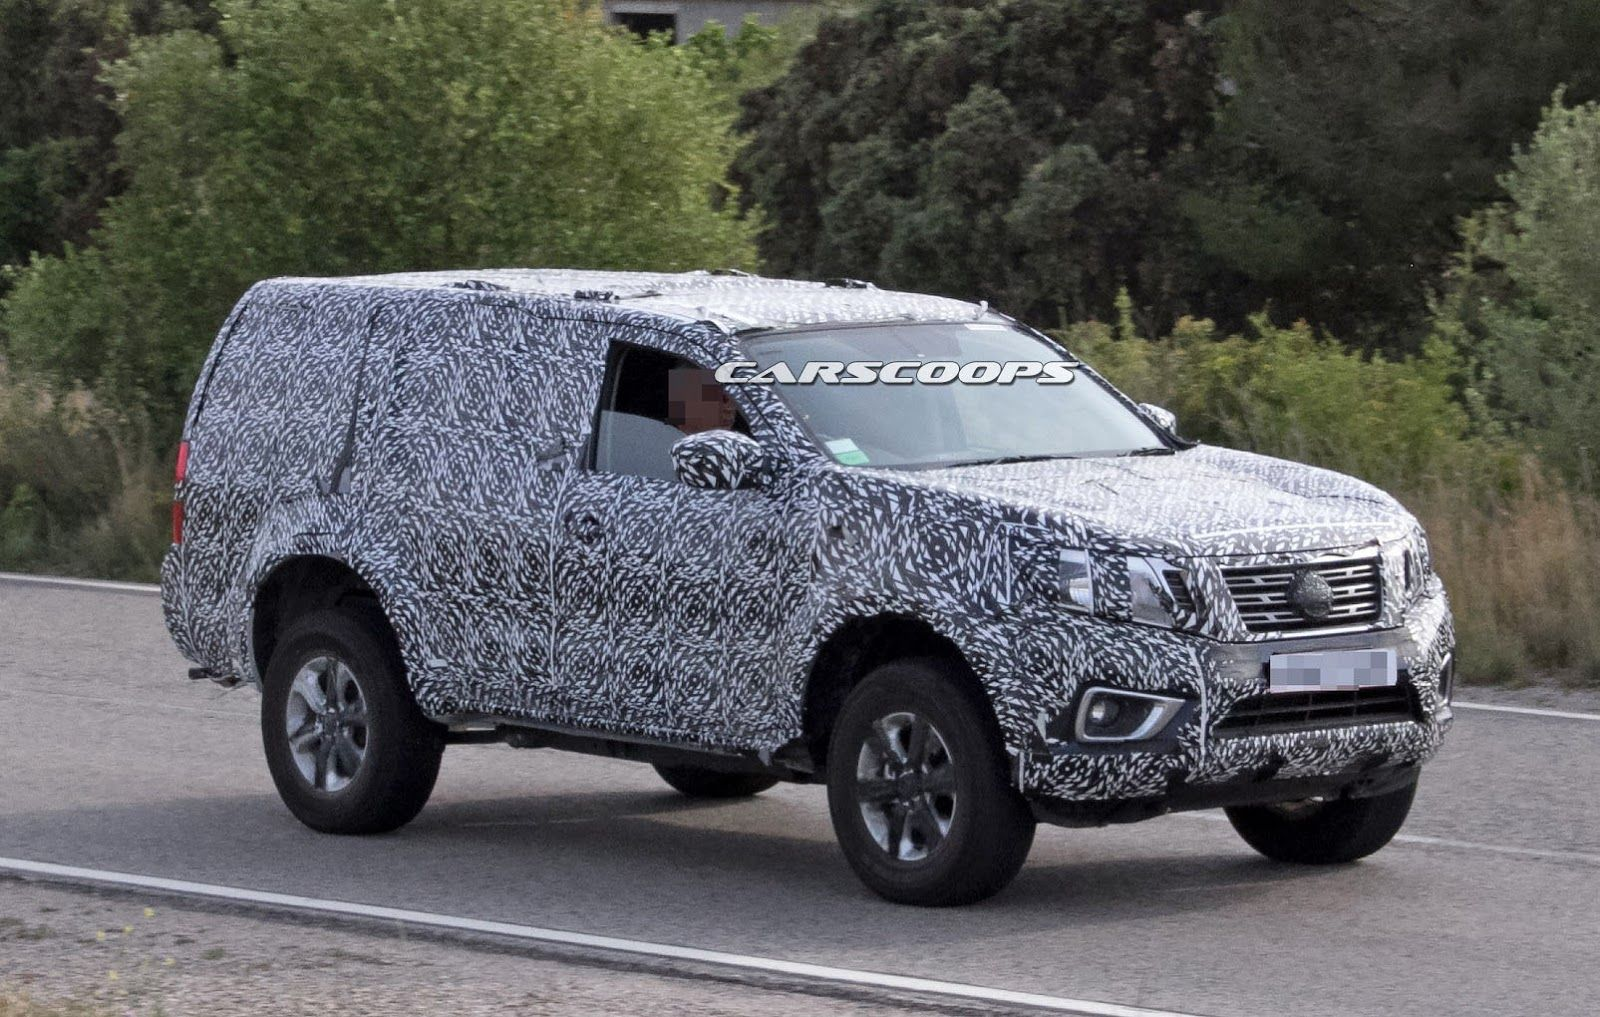 Nissan is readying a tough body on frame suv as our spies nabbed a test mule based on the latest generation navara pickup truck